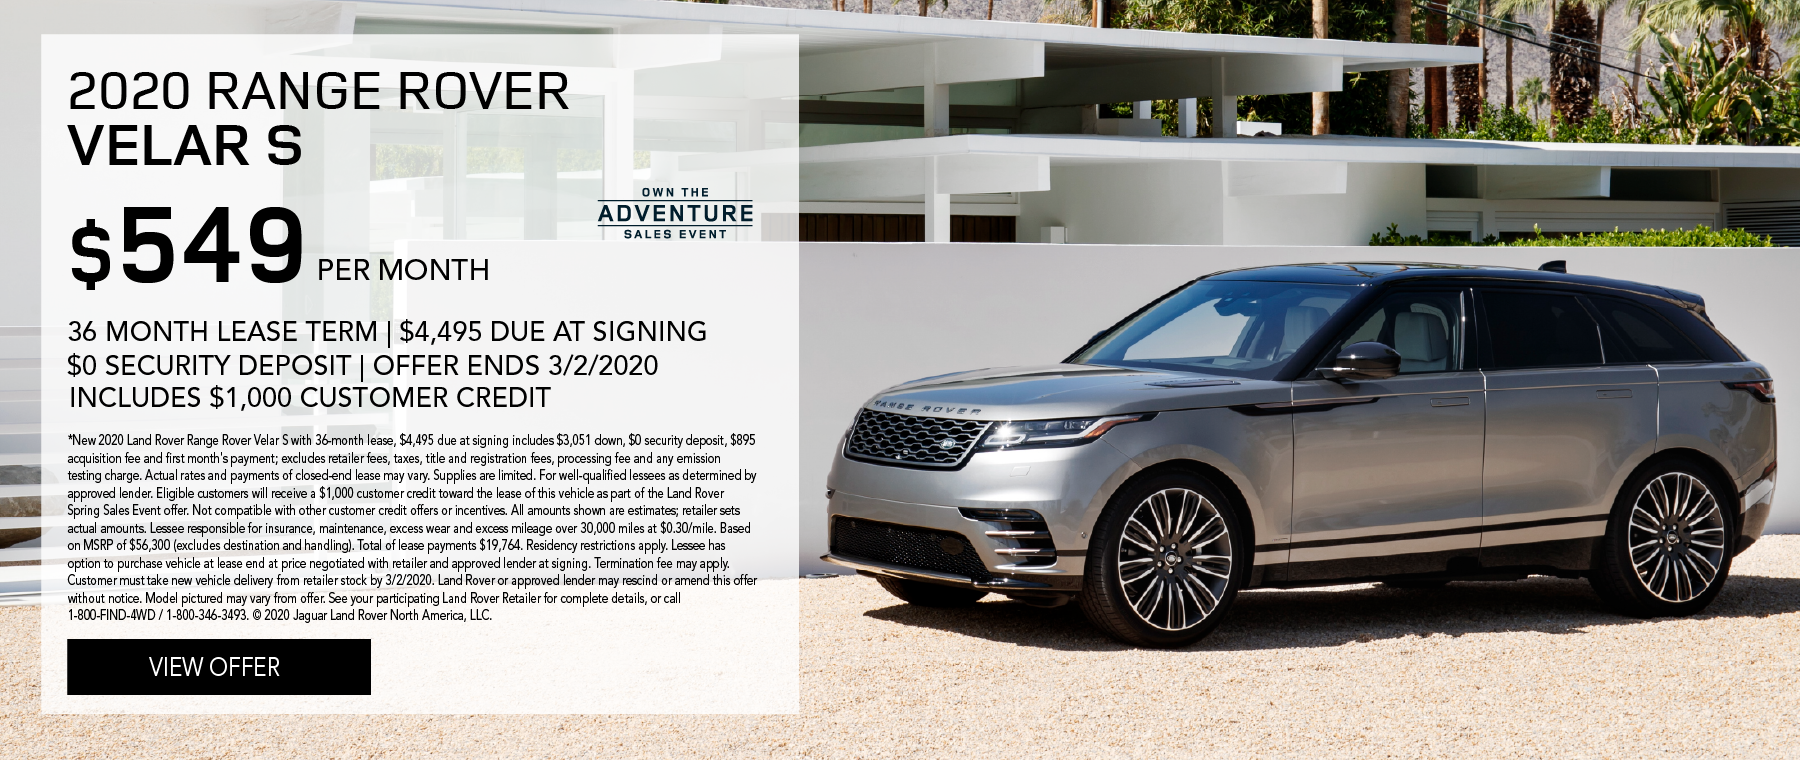 2020 RANGE ROVER VELAR S PARKED ON GRAVEL TERRAIN WITH MODERN WHITE BUILDING IN BACKGROUND. $549 PER MONTH. 36 MONTH LEASE TERM. $4,495 CASH DUE AT SIGNING. INCLUDES $1,000 CUSTOMER CREDIT. $0 SECURITY DEPOSIT. 10,000 MILES PER YEAR. OFFER ENDS 3/2/2020. OWN THE ADVENTURE SALES EVENT.